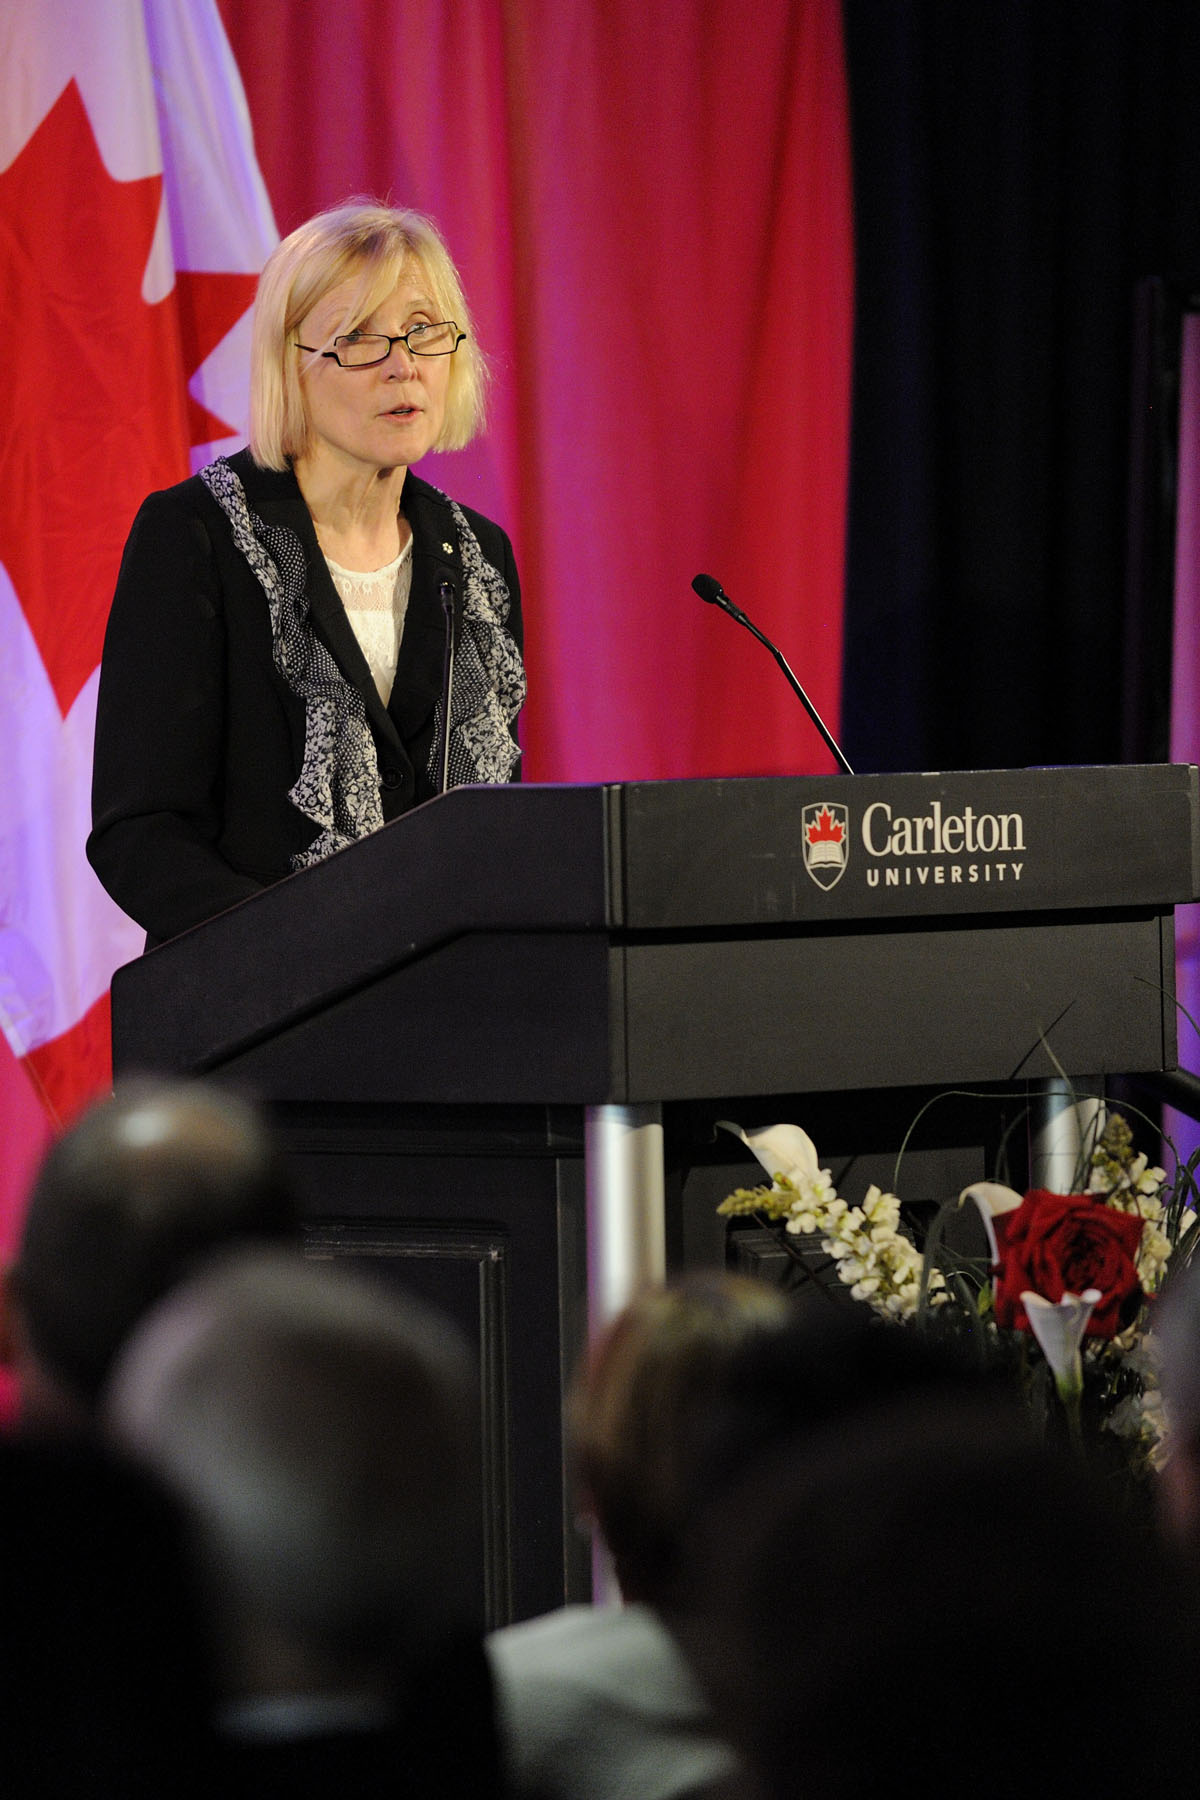 Ms. Roseann O'Reilly Runte, Carleton University President, welcomed everyone to the event.